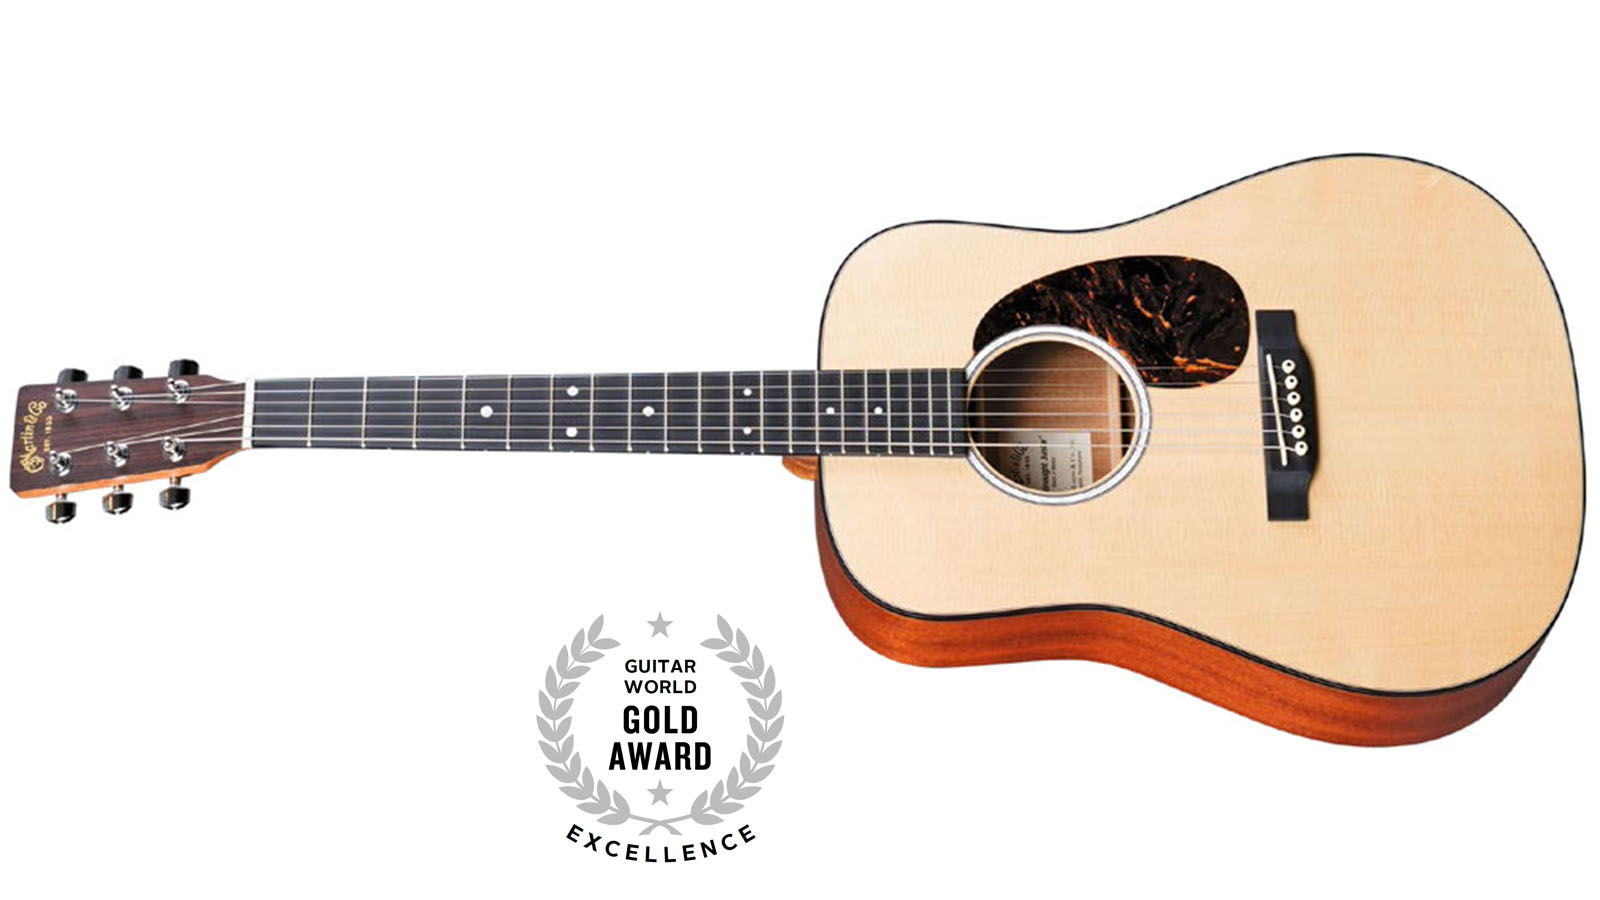 Review: Martin's new DJr-10E Dreadnought Junior is the perfect